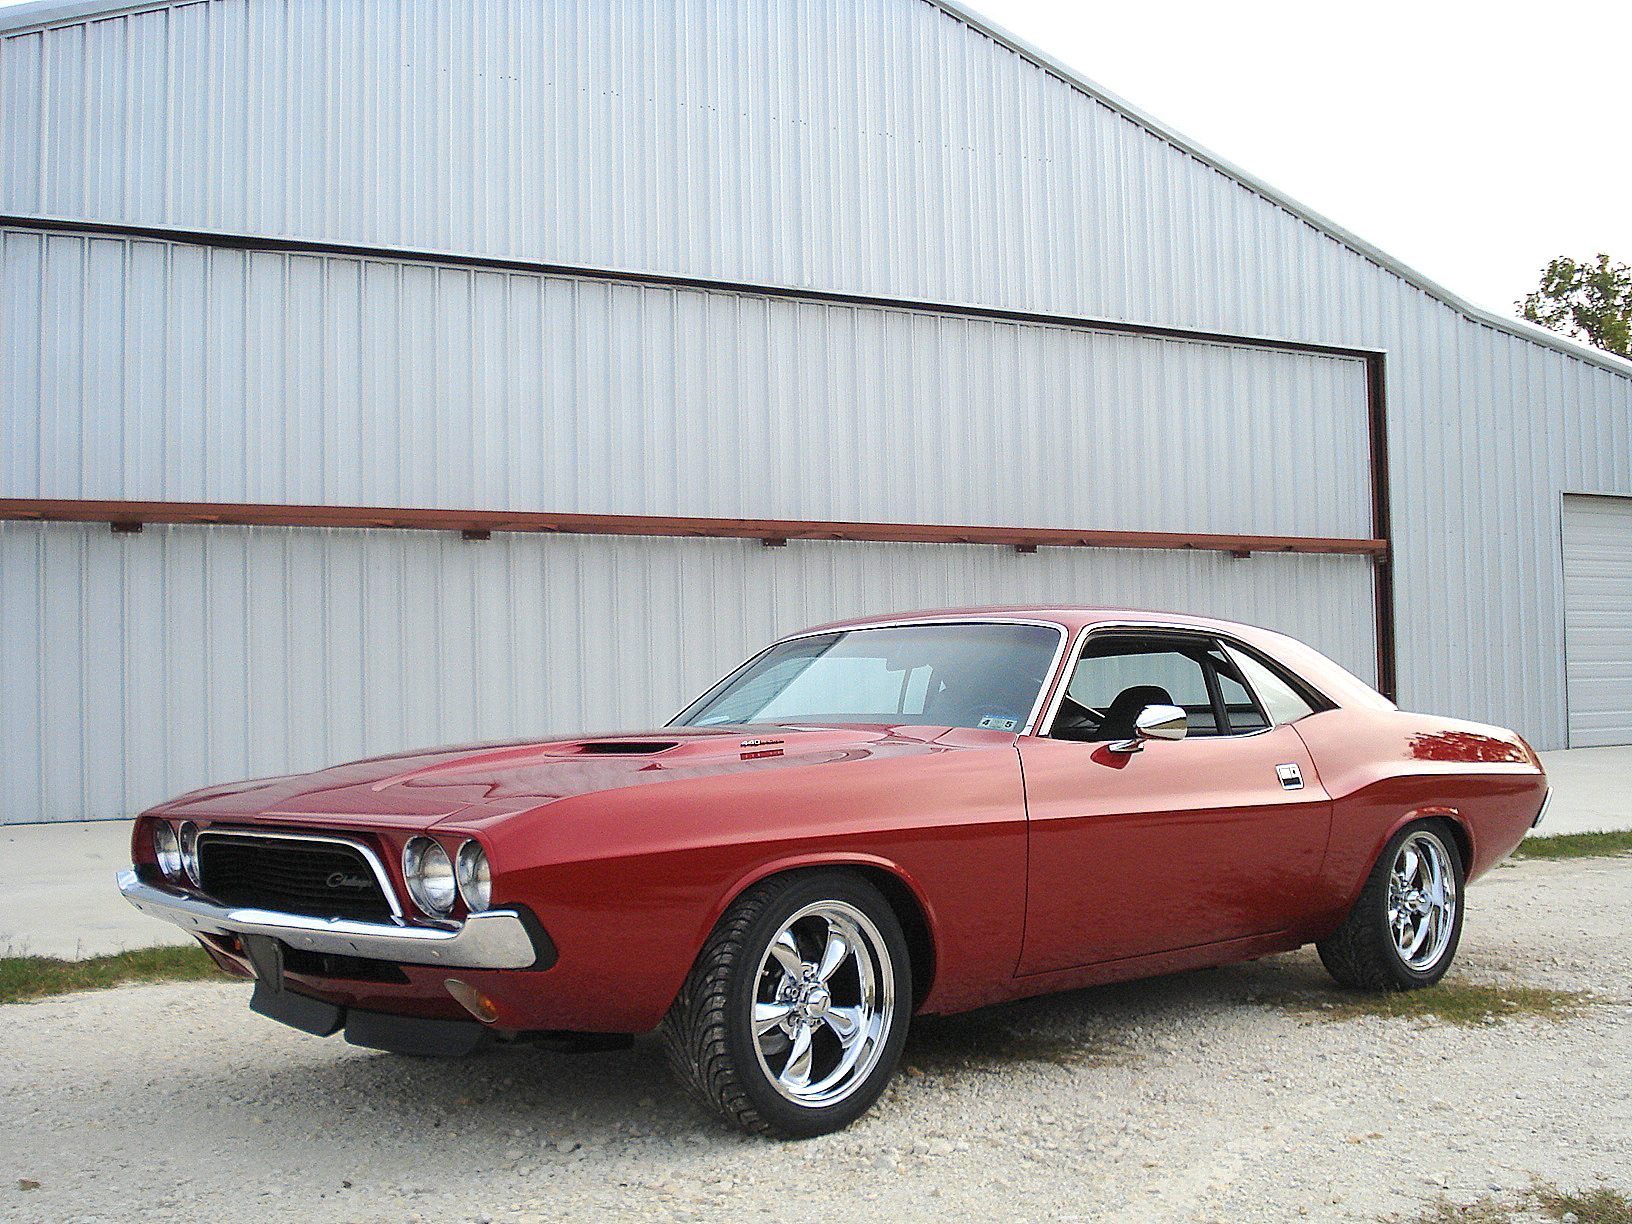 DAC Motorsports - Classic Muscle Car Sales, Classic Muscle Car ...